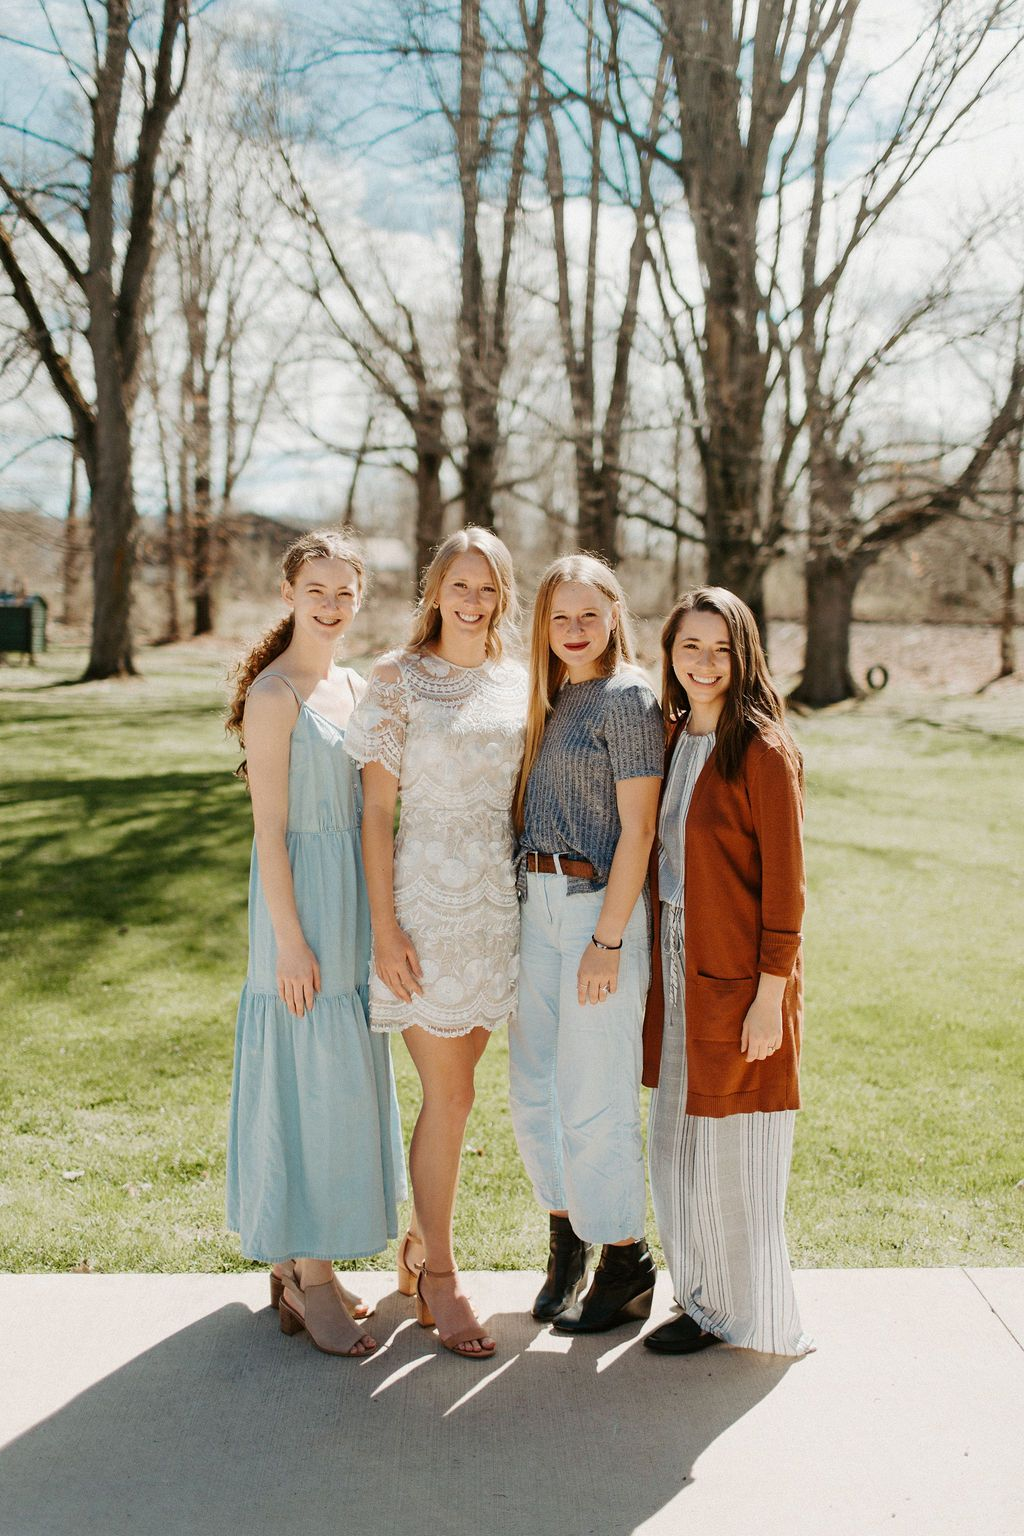 lex's virtual bridal shower covid-19 katie graham photography bemus point ny wedding photographer